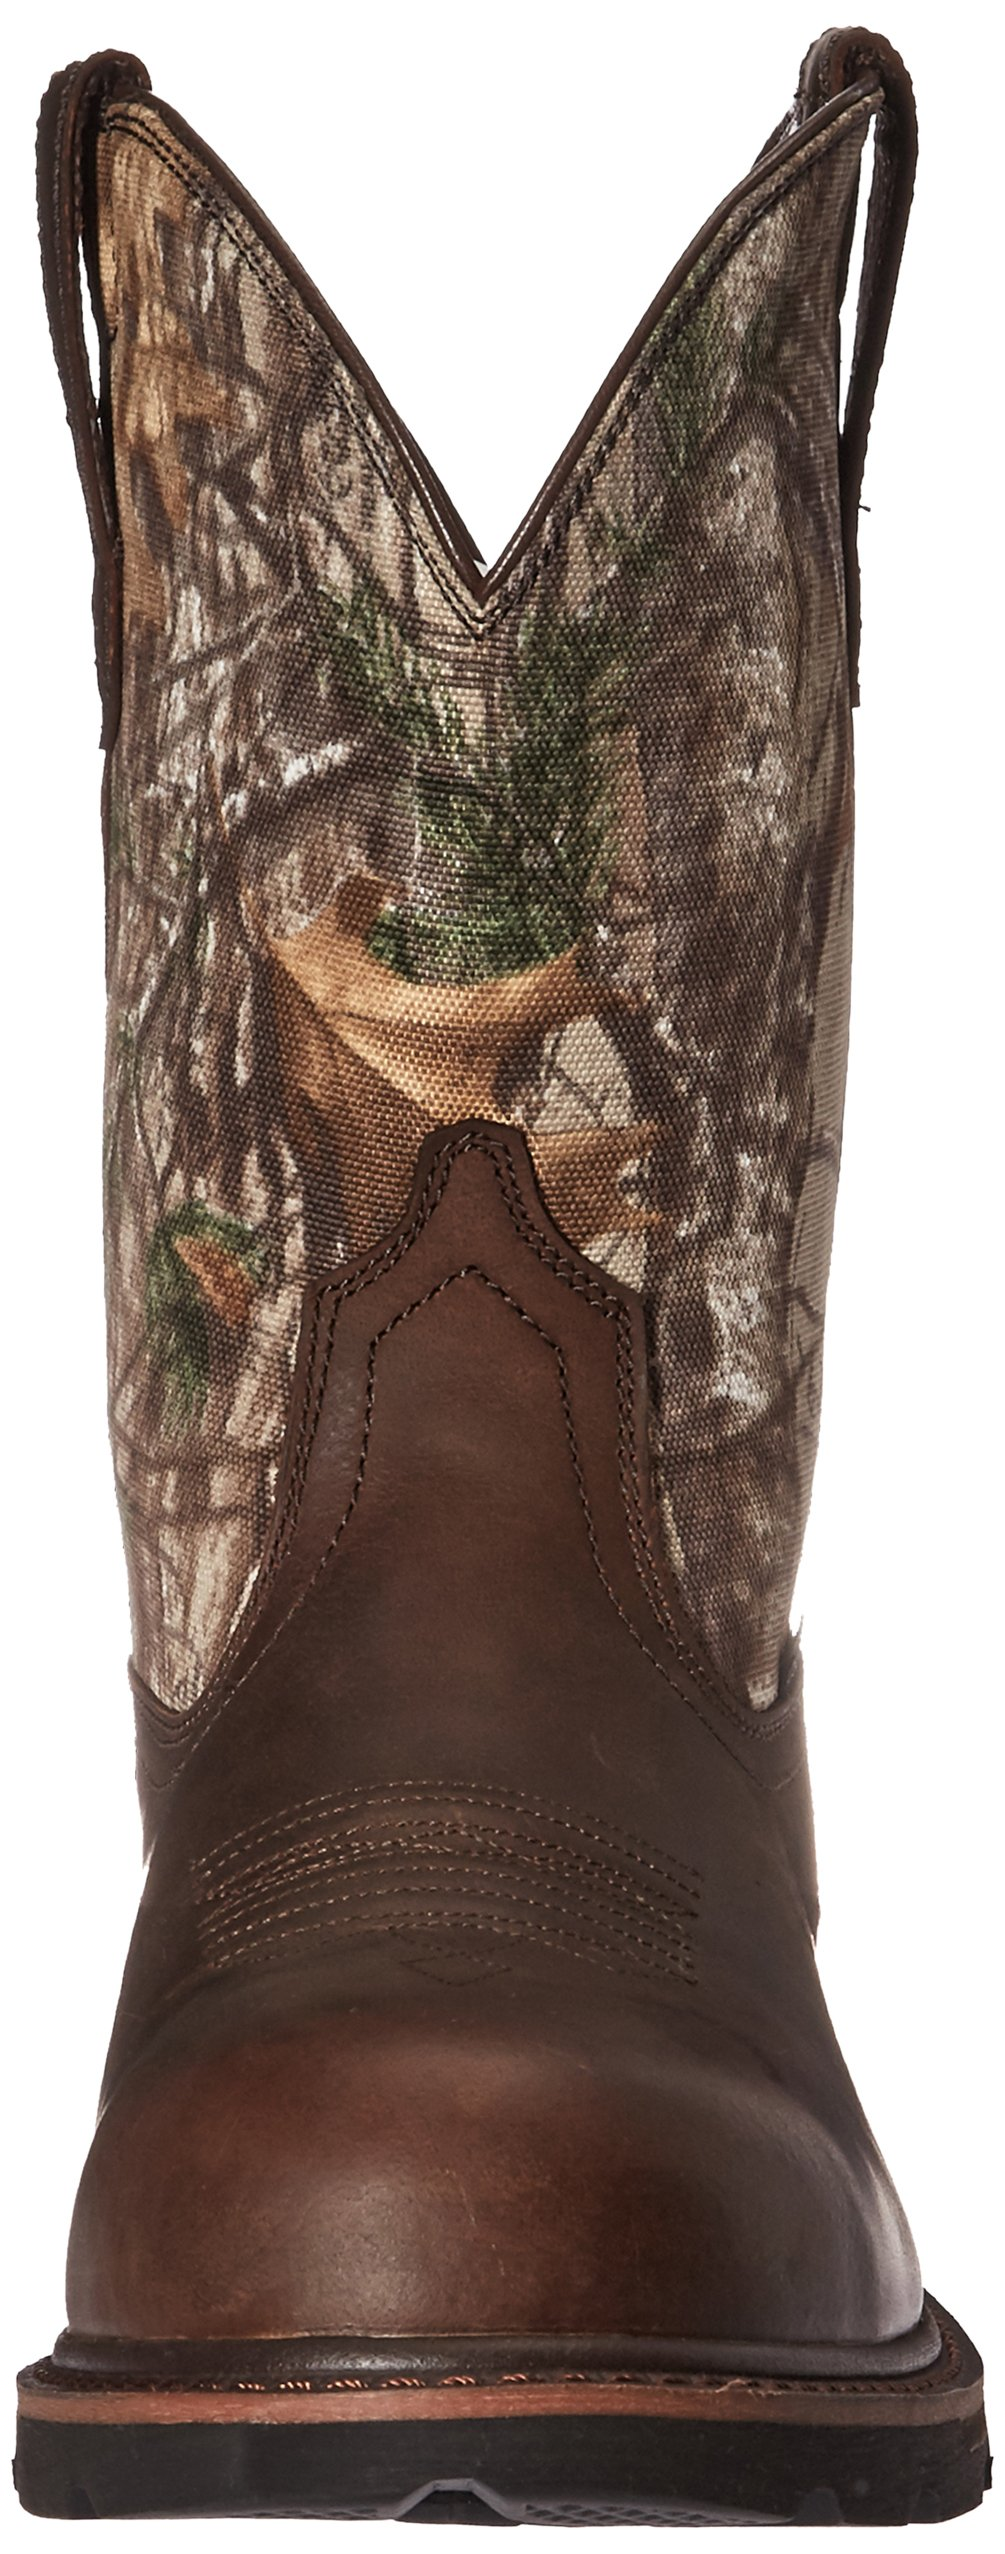 Ariat Work Men's Groundbreaker Pull-On Steel Toe Work Boot, Brown/Real Tree Extra, 7 D US by Ariat (Image #4)